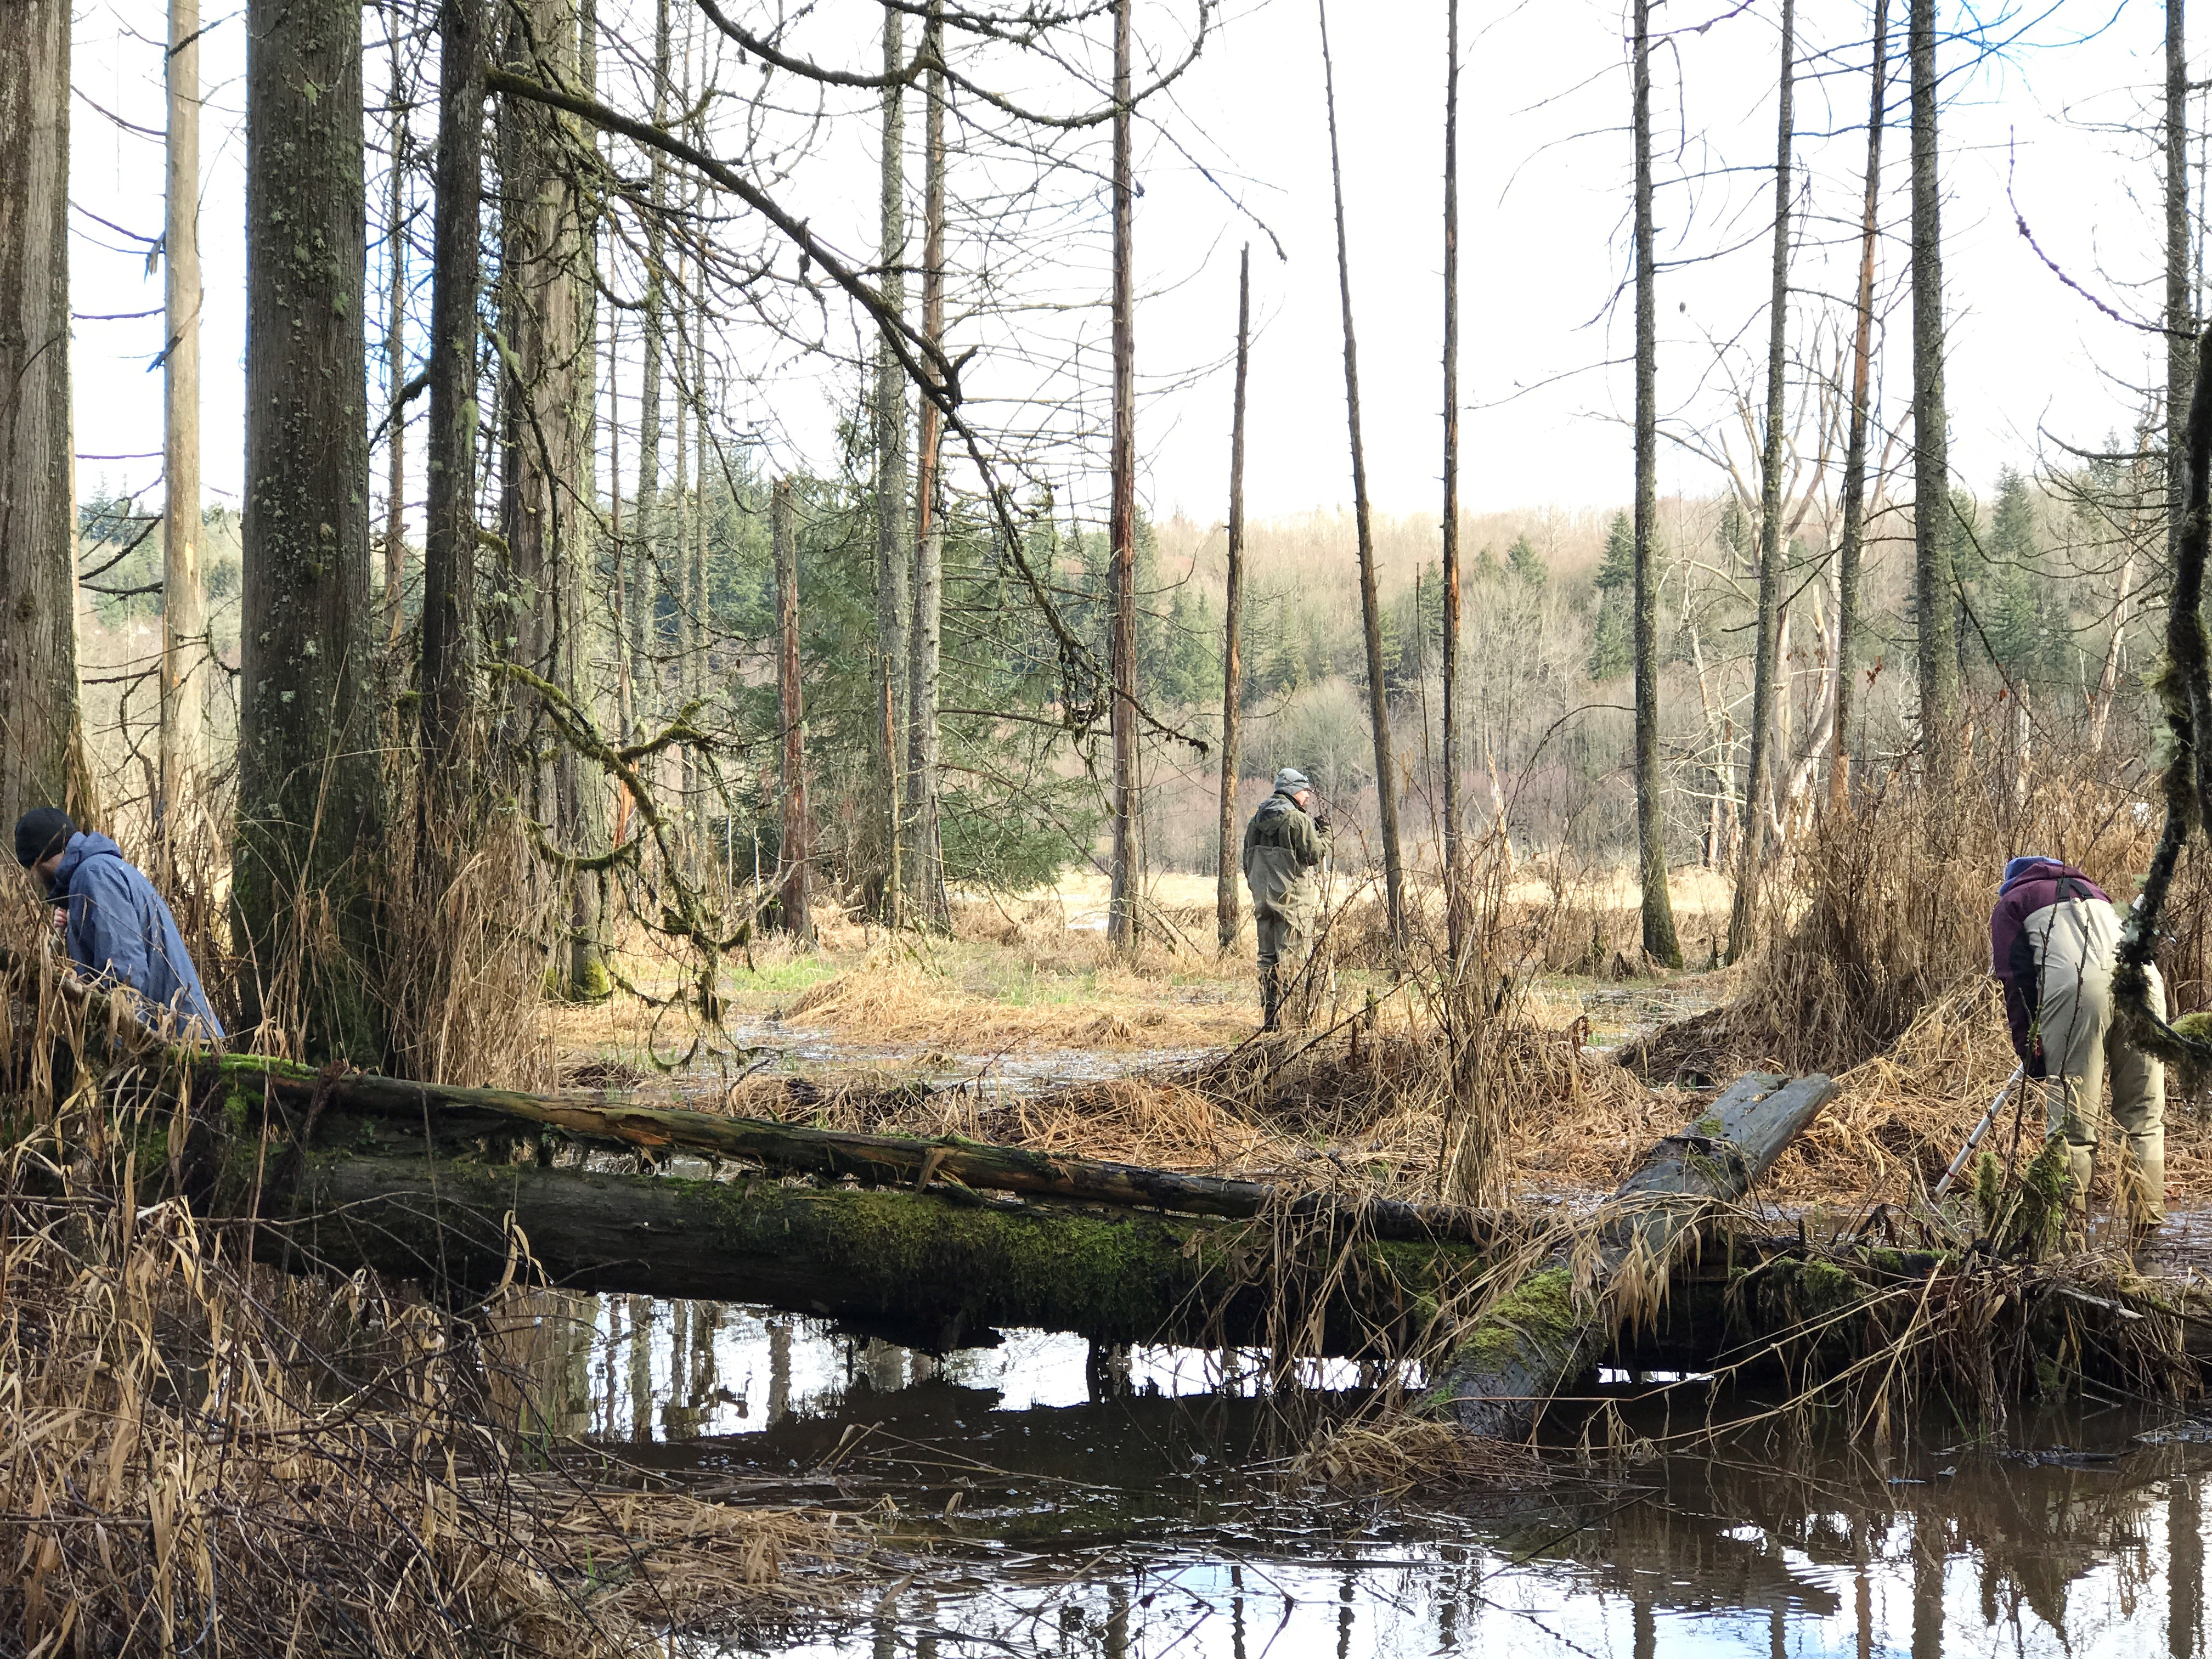 Volunteers measure water quality and biological diversity during an amphibian monitoring citizen science project at Big Lake Wetlands Conservation Area, March 2018. Photograph credit: Skagit Land Trust staff.